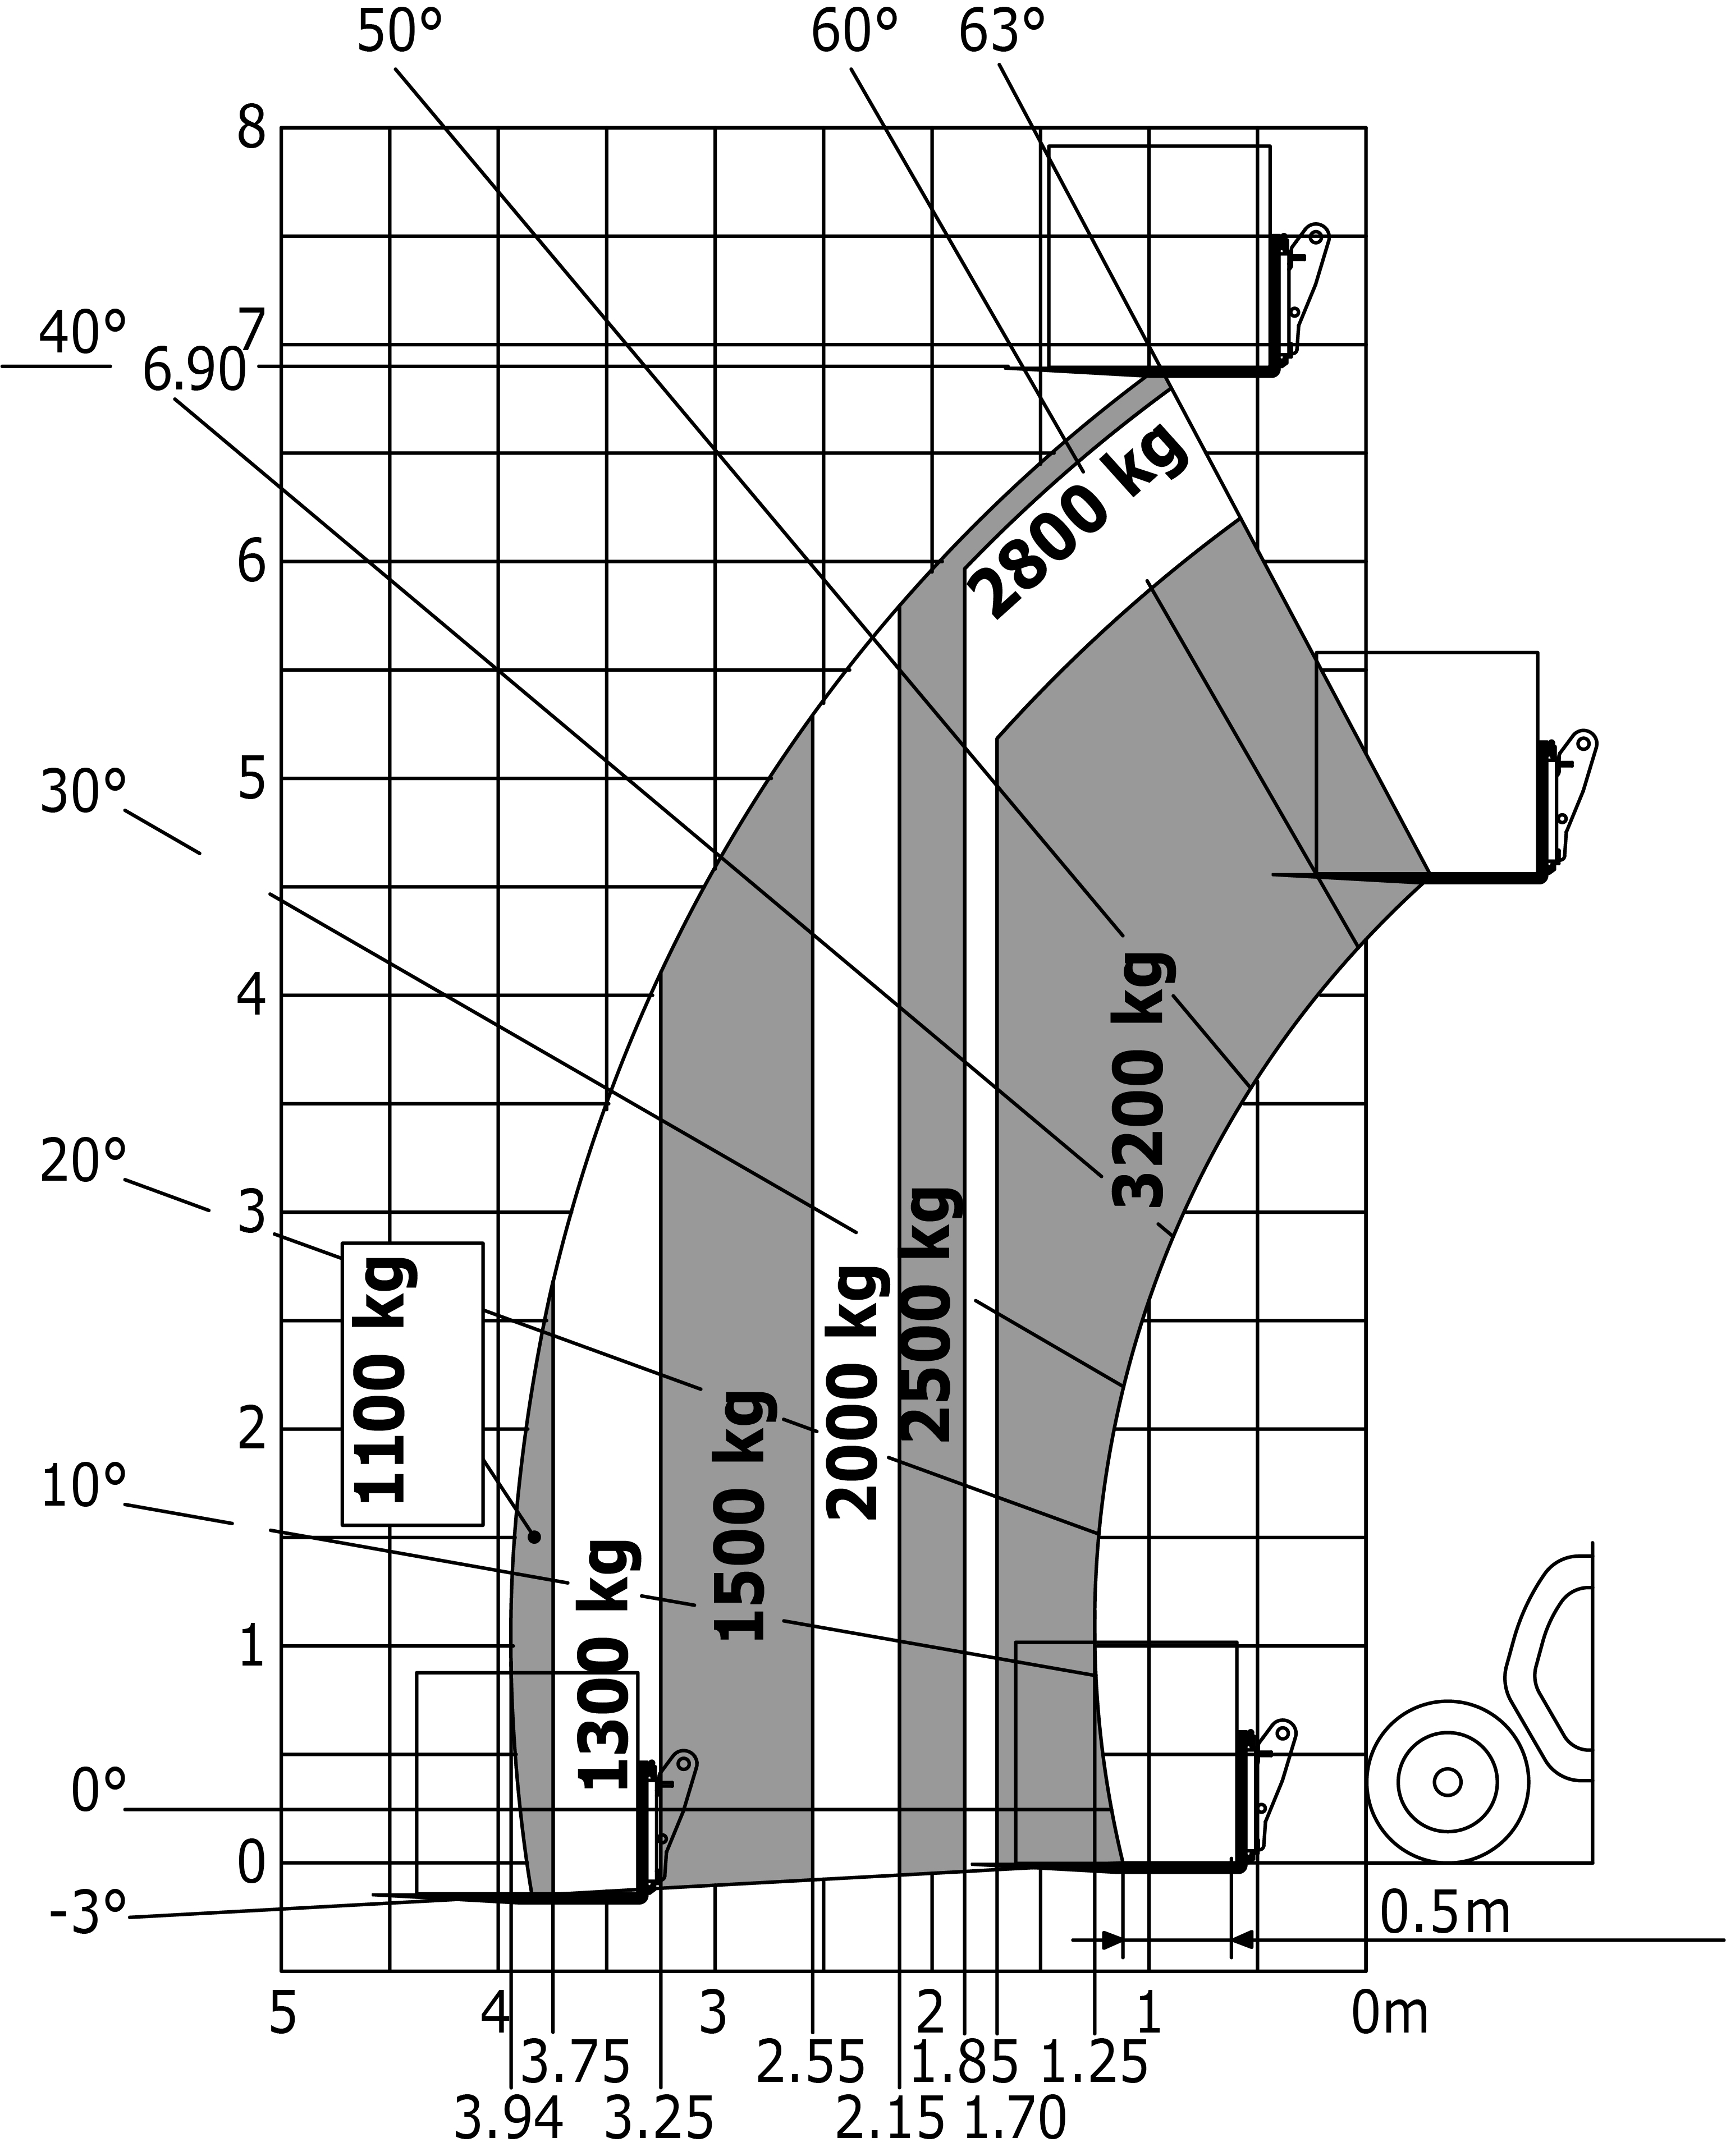 Manitou Mt 732 Easy Telehandlers Simple Hydraulic System Diagram Photo Album Diagrams Load Chart En1459 B